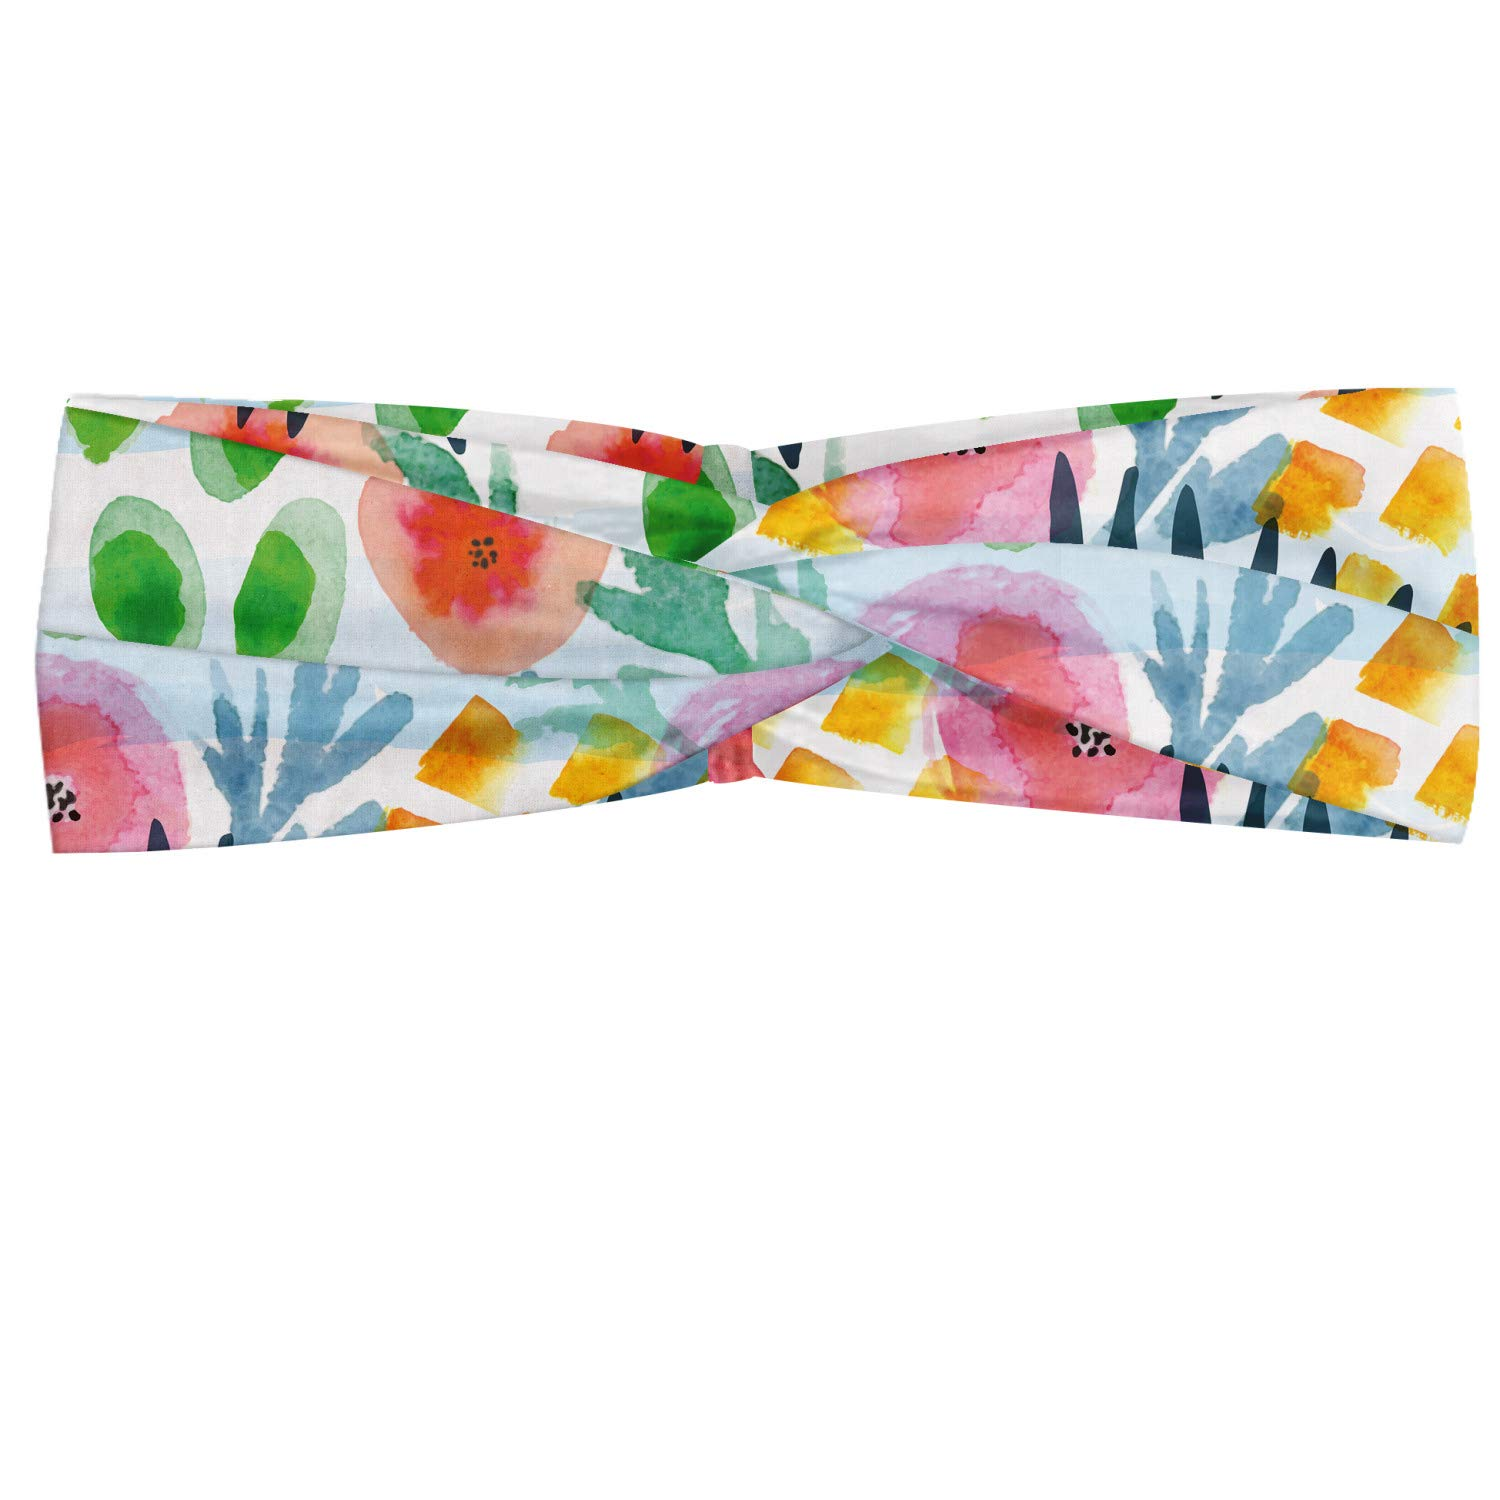 Ambesonne Floral Headband, Modern Brushstroke Flowers in Watercolor Painbrush Effects Baby Girls Playroom Paint, Elastic and Soft Women's Bandana for Sports and Everyday Use, Multicolor